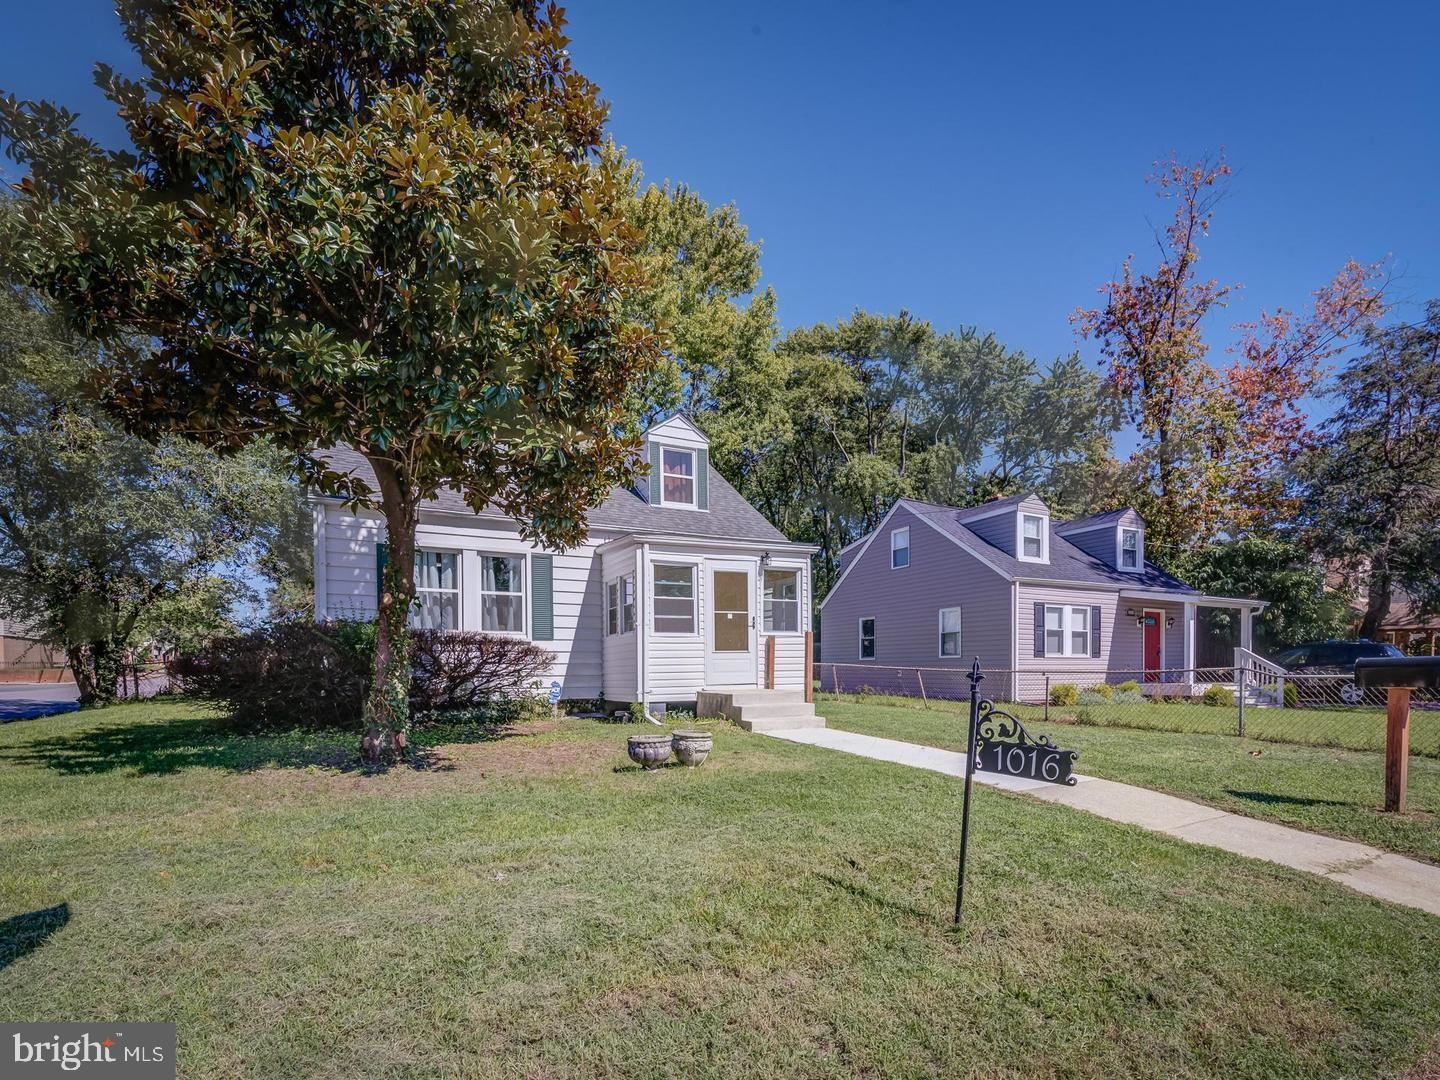 Photo for 1016 JACKSON ST, ANNAPOLIS, MD 21403 (MLS # MDAA471818)